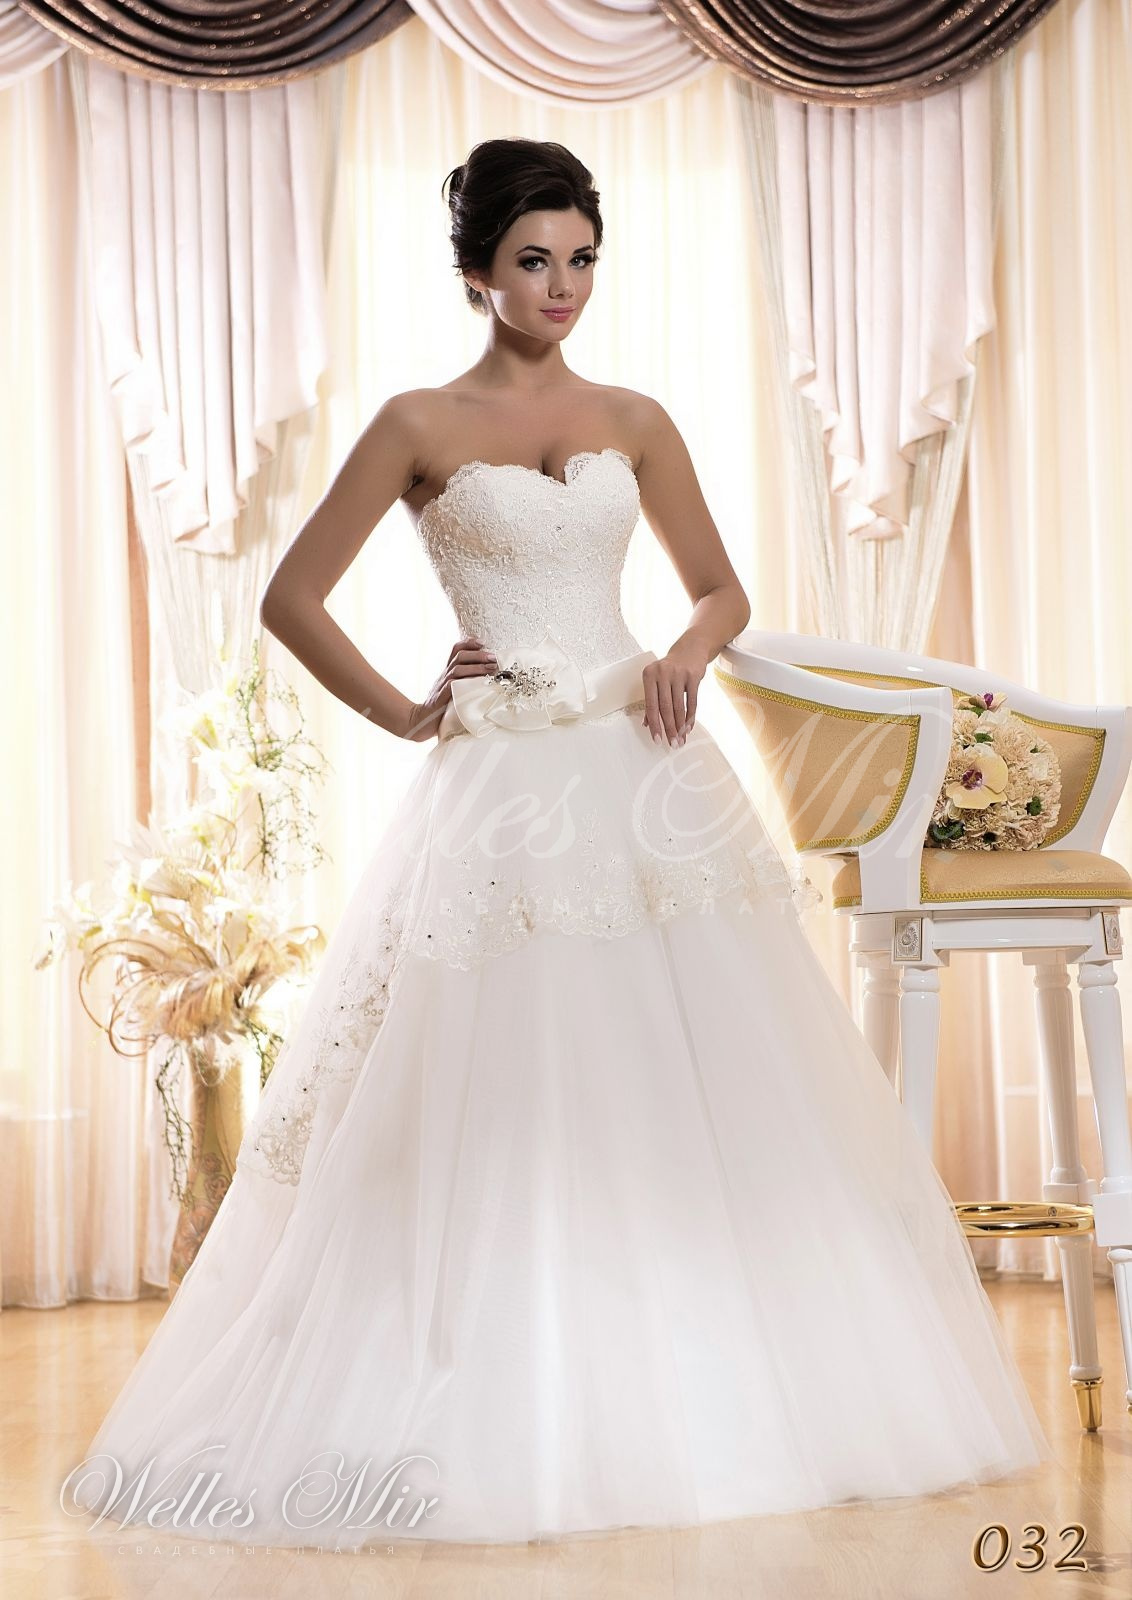 Wedding dresses 032